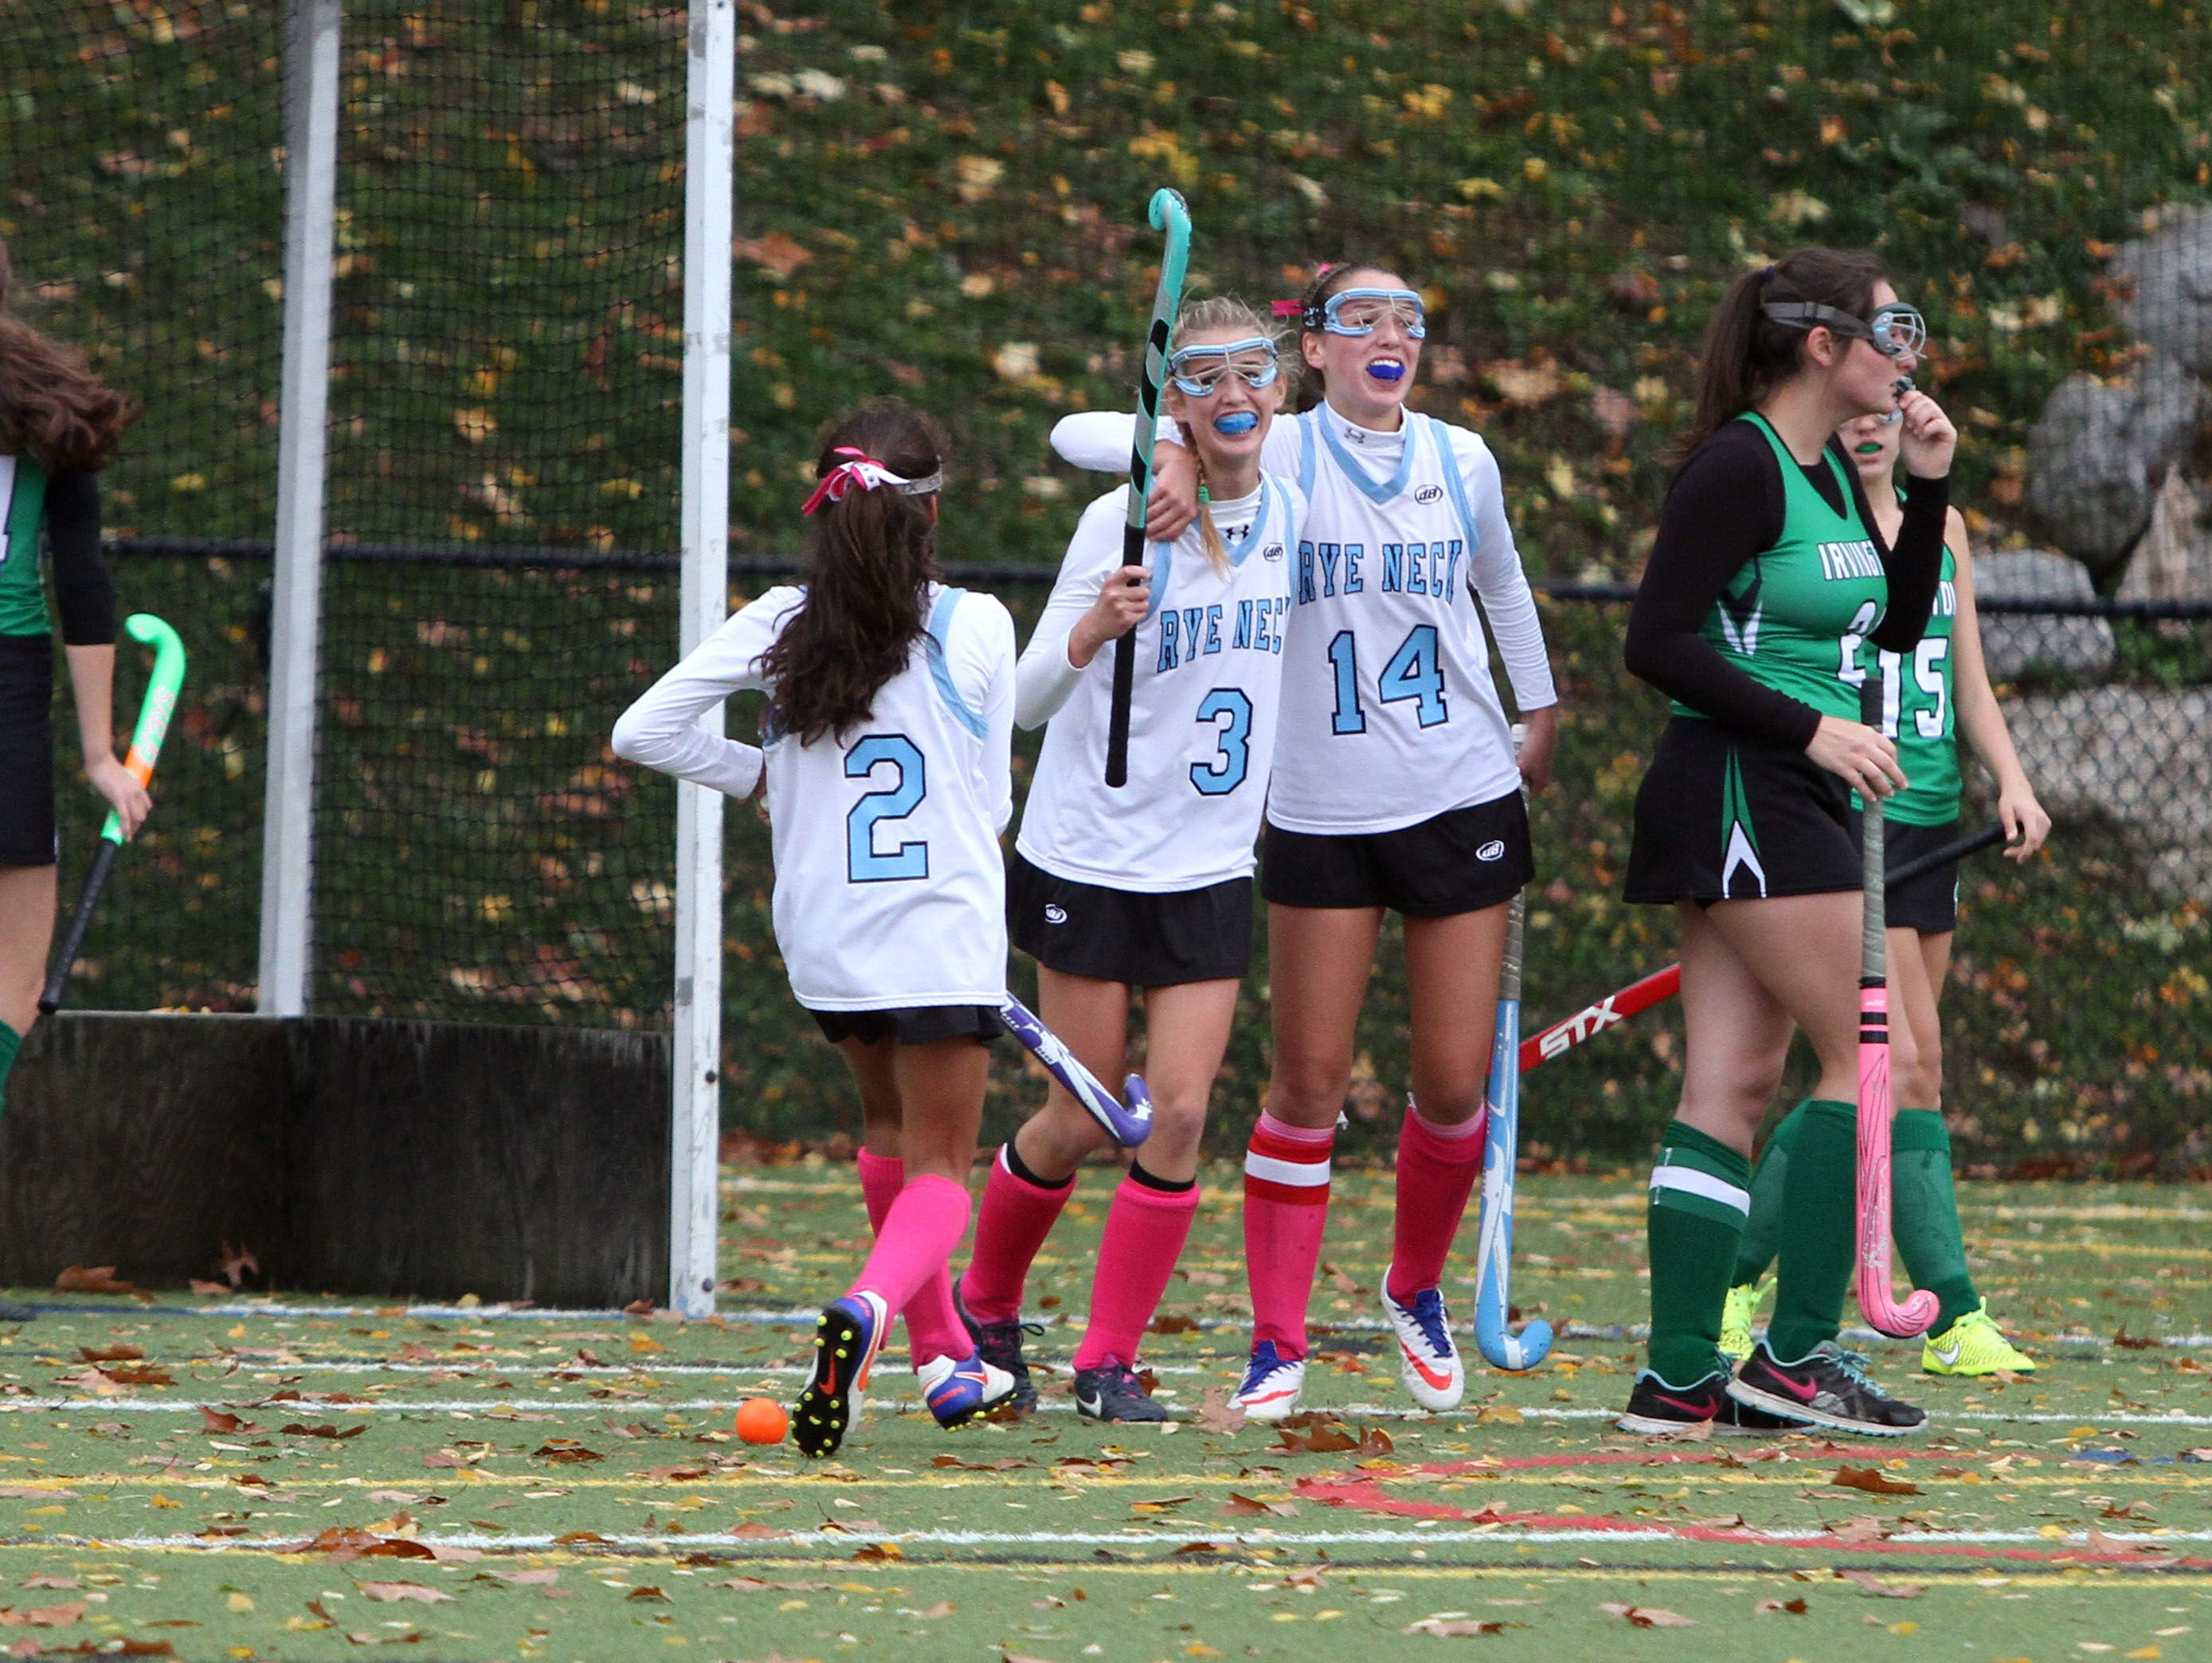 Rye Neck's Sonia Finkenberg, Emilie Cohen and Alison Cohen, celebrate Emilie's goal against Irvington during their field hockey game at Mamaroneck High School Saturday. Rye Neck won 1-0..